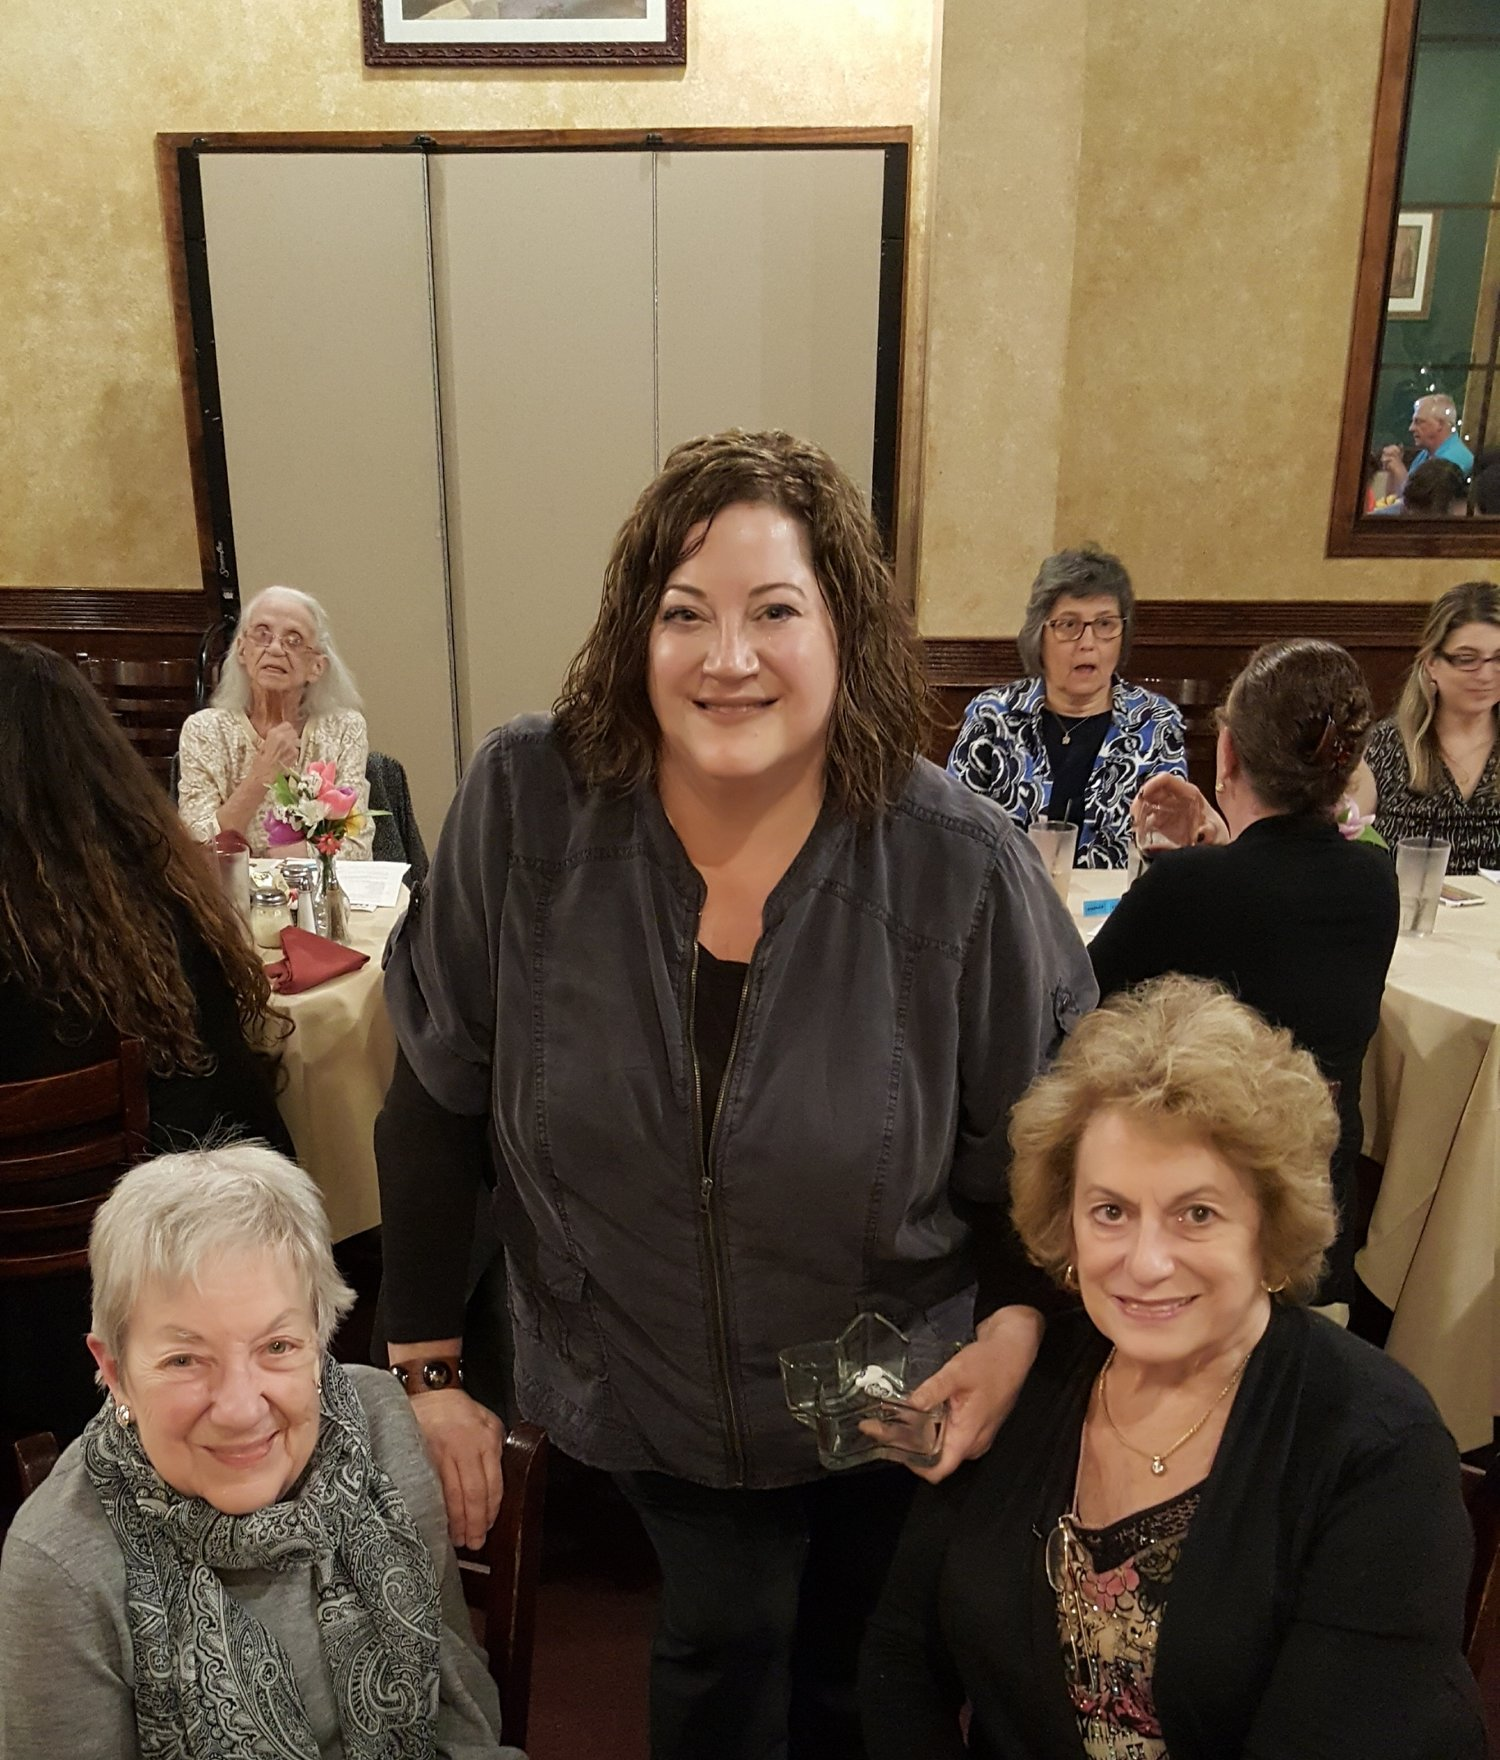 - Rockstars of the month get rock candy and mini Nike statues. The winged goddess of victory is BPW's national symbol since 1919. President Becky Shoulberg gives the awards to her mom, Molly Shoulberg (right) and her Aunt Barbara Cressman. The sisters grew up on Forrest Avenue accross from Selma Mansion.